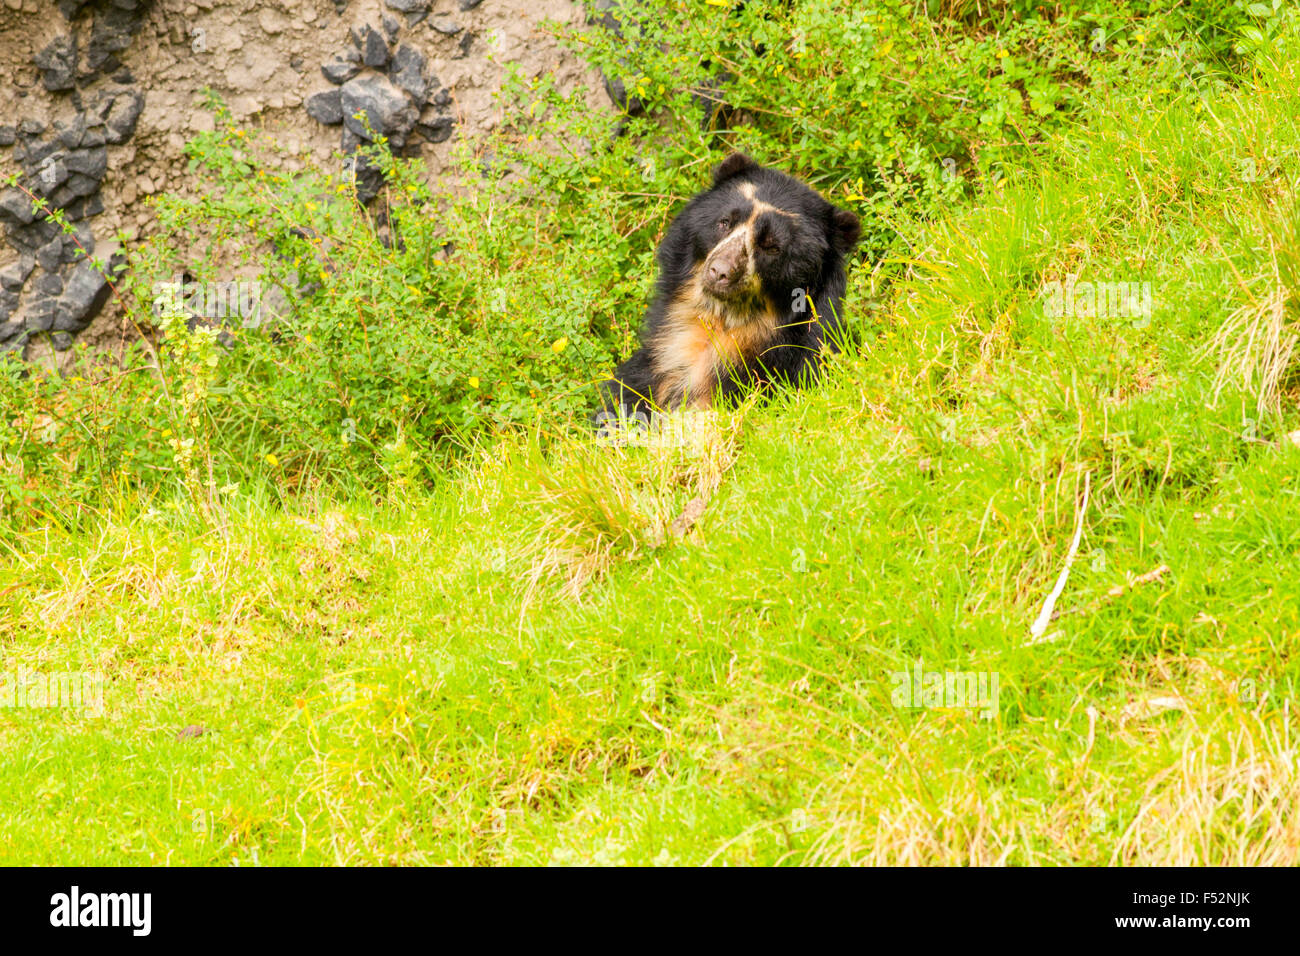 Large Male Andean Bear Shoot In The Wild In Ecuadorian Andes Mountain - Stock Image